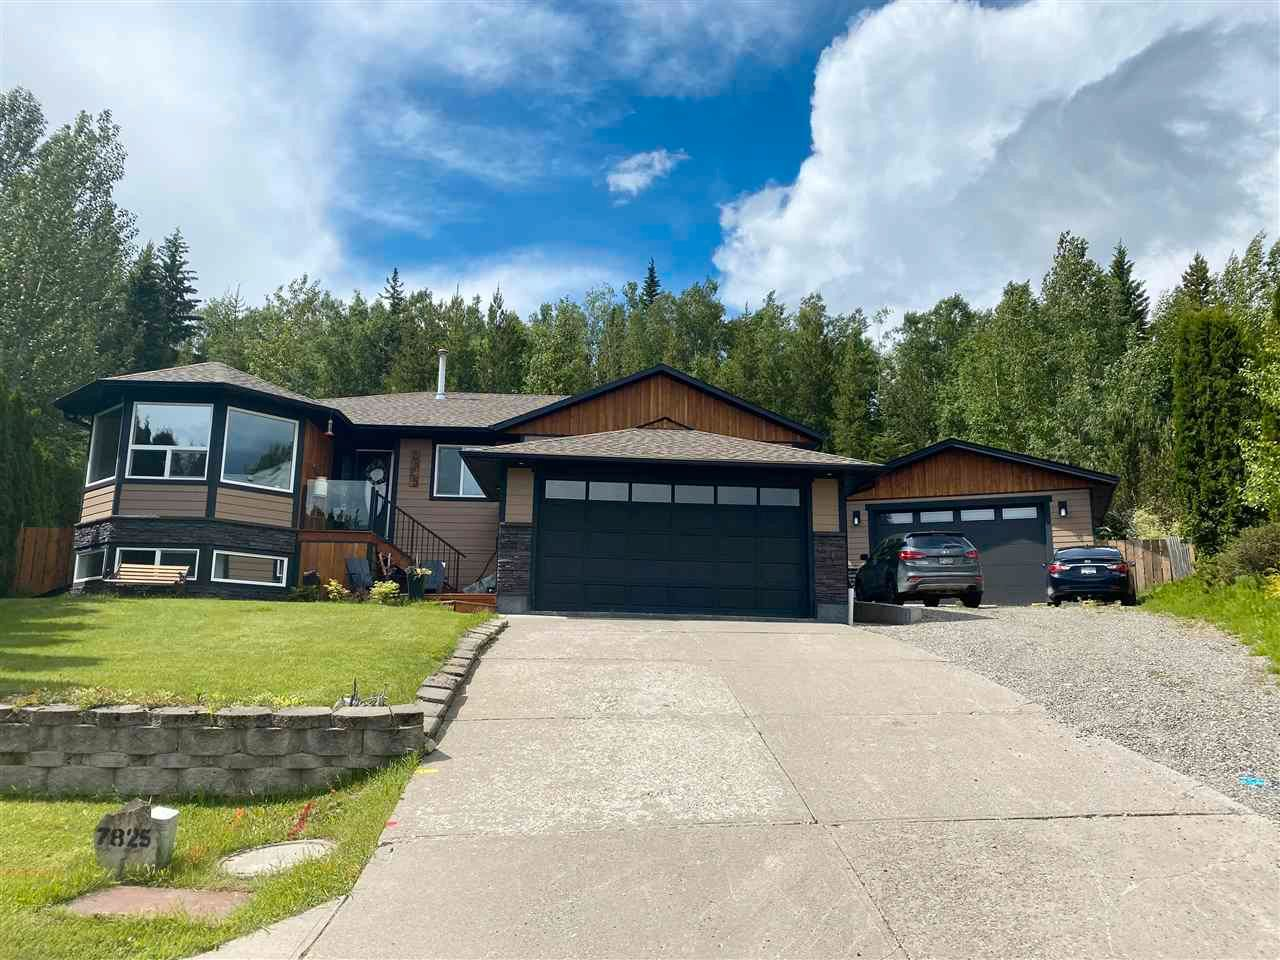 Main Photo: 7825 ST THOMAS Place in Prince George: St. Lawrence Heights House for sale (PG City South (Zone 74))  : MLS®# R2592140